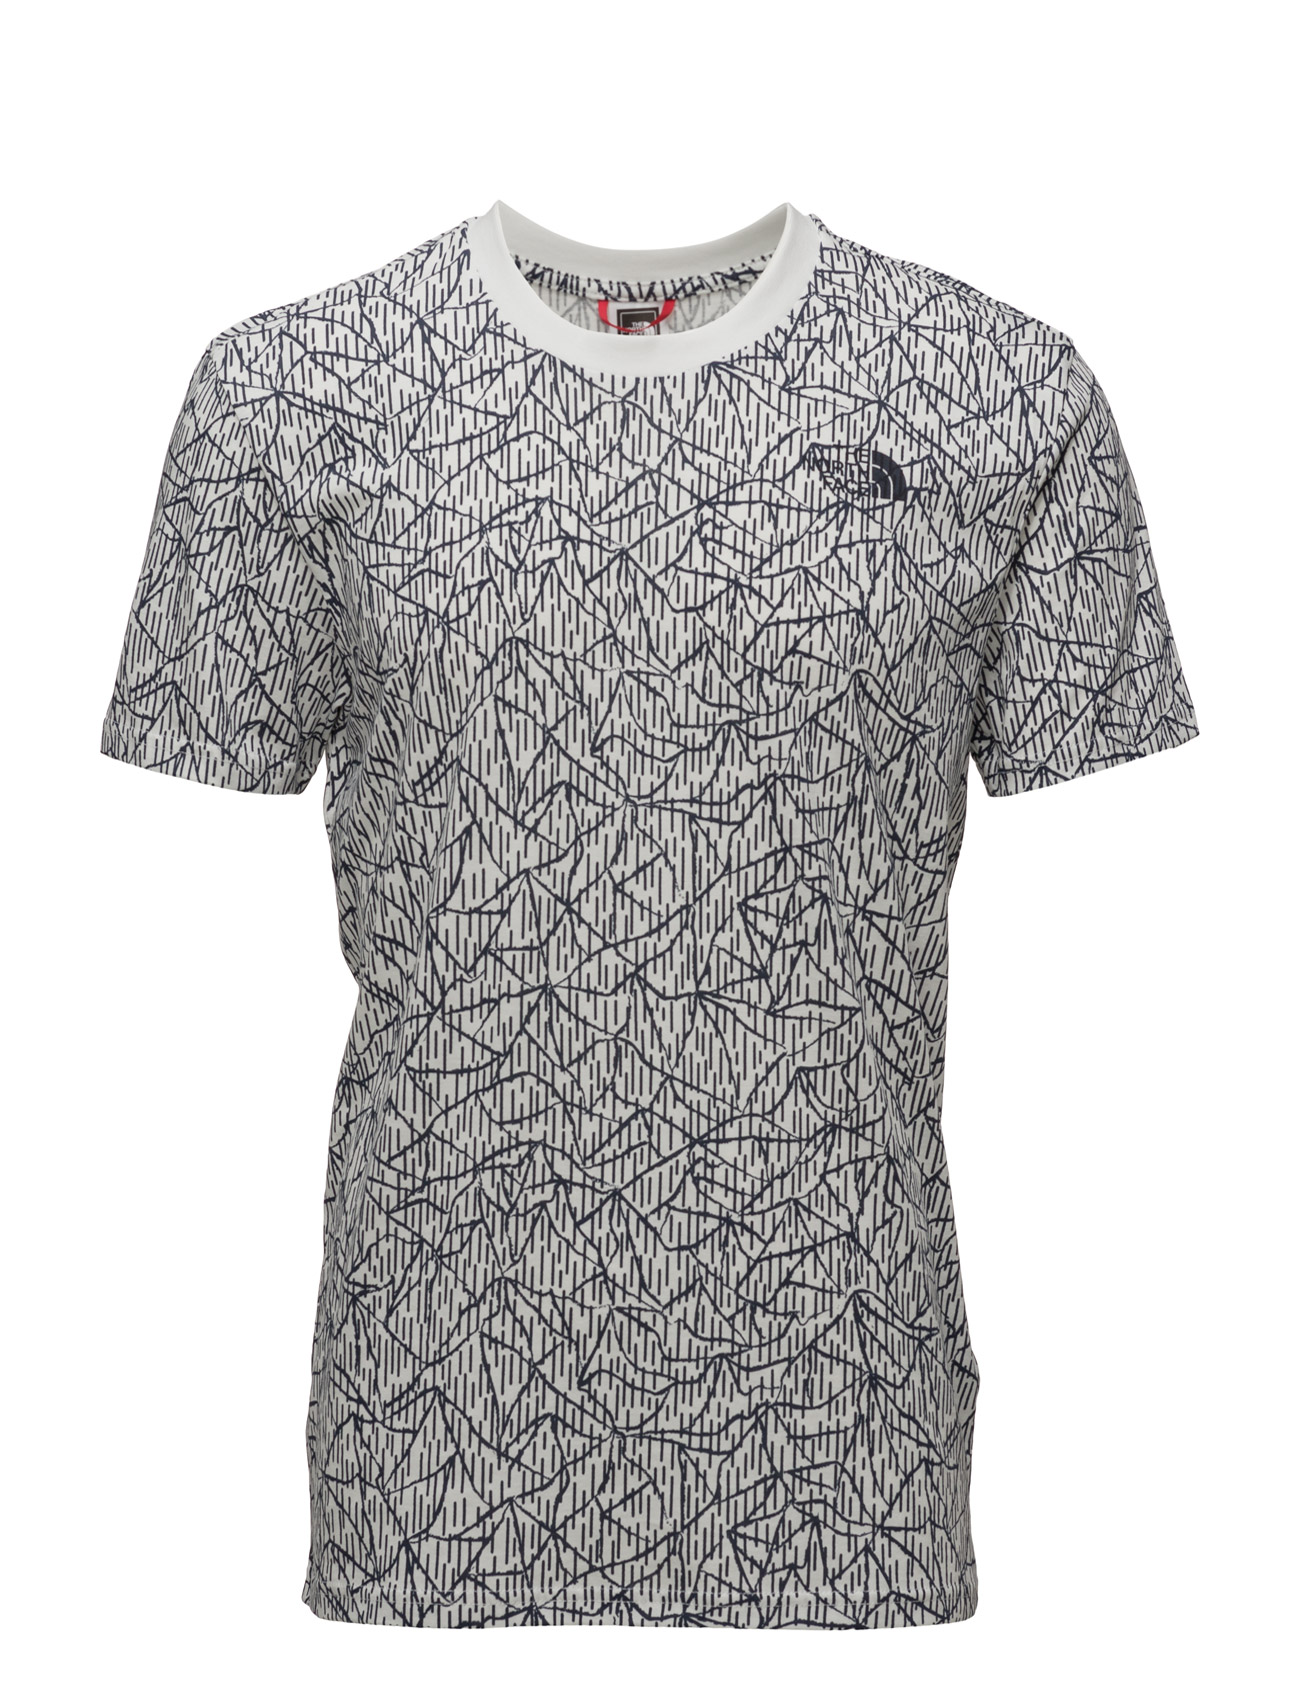 M Ss Simple Dome Tee The North Face Sports toppe til Mænd i